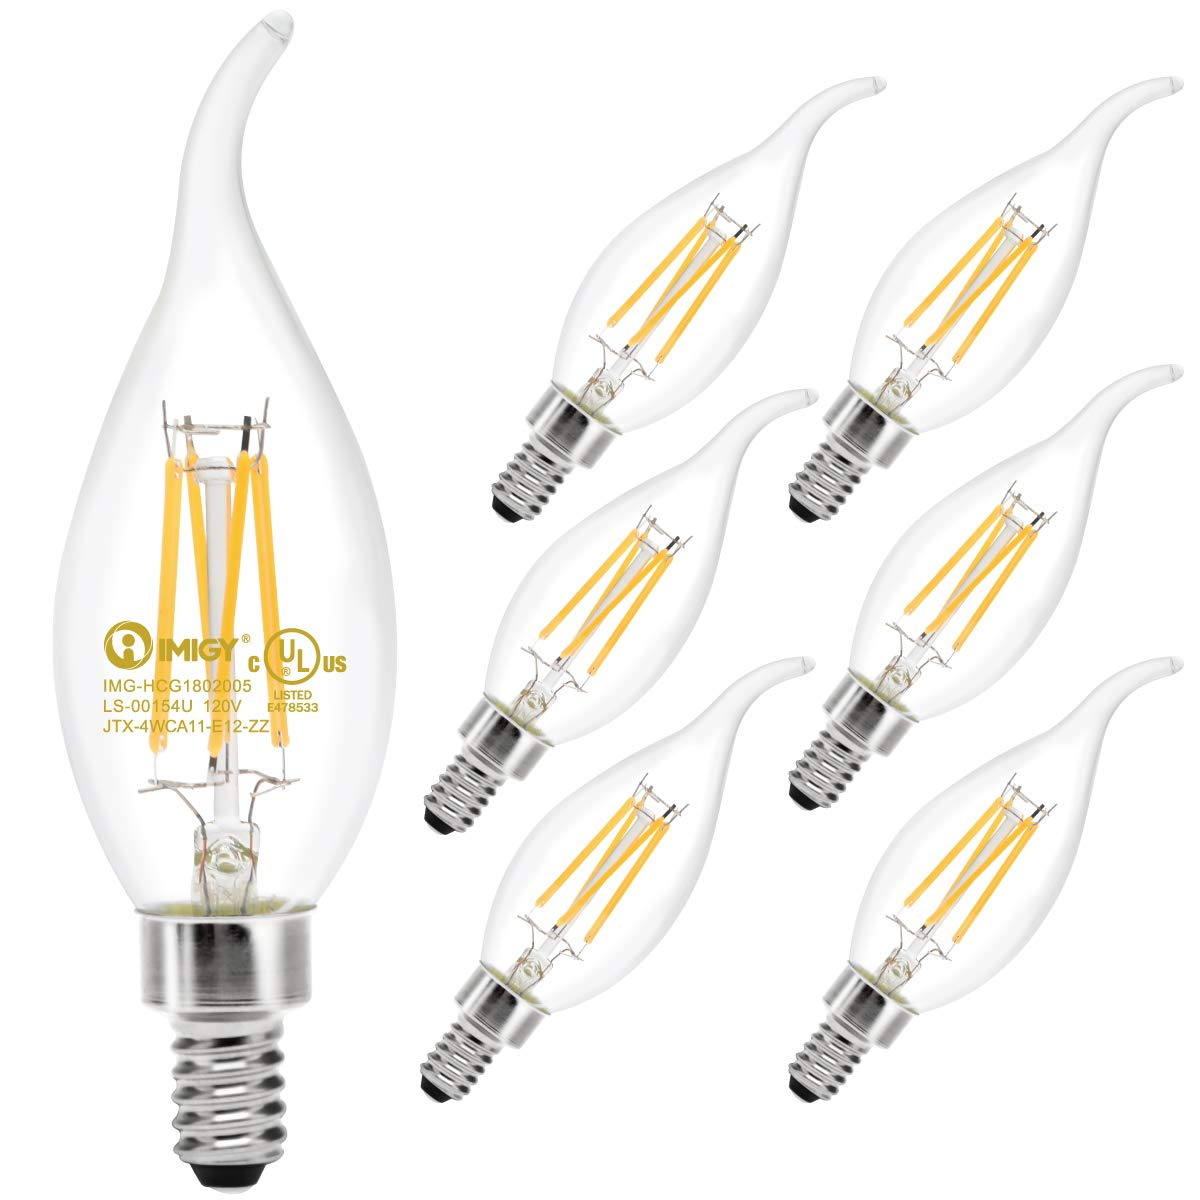 6-Pack Flame Tip LED Filament Bulb 40W Equivalent with 400LM Brightness, IMIGY E12 Base 2700K Candelabra Warm Light B11 Bulb, Flamp Tip Filament Light Non-Dimmable